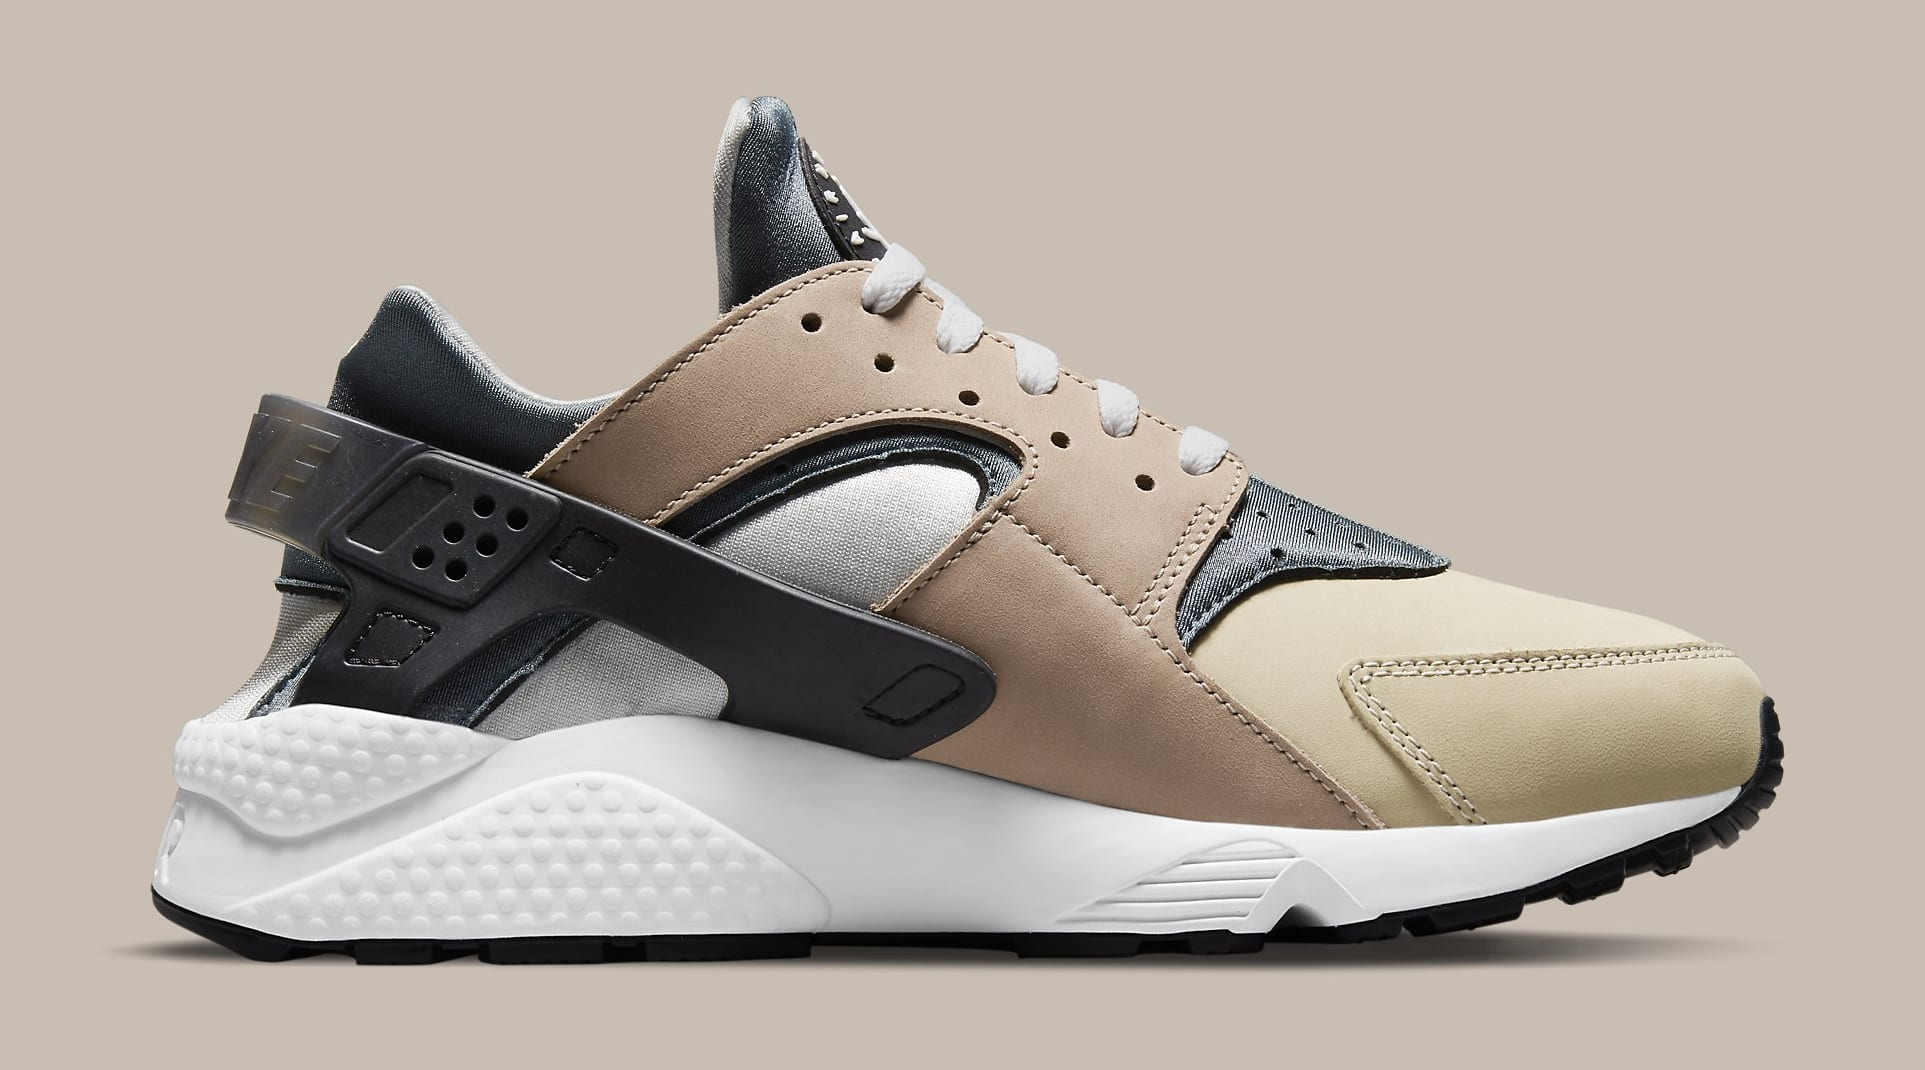 Nike Air Huarache 'Escape' DH9532-201 Medial